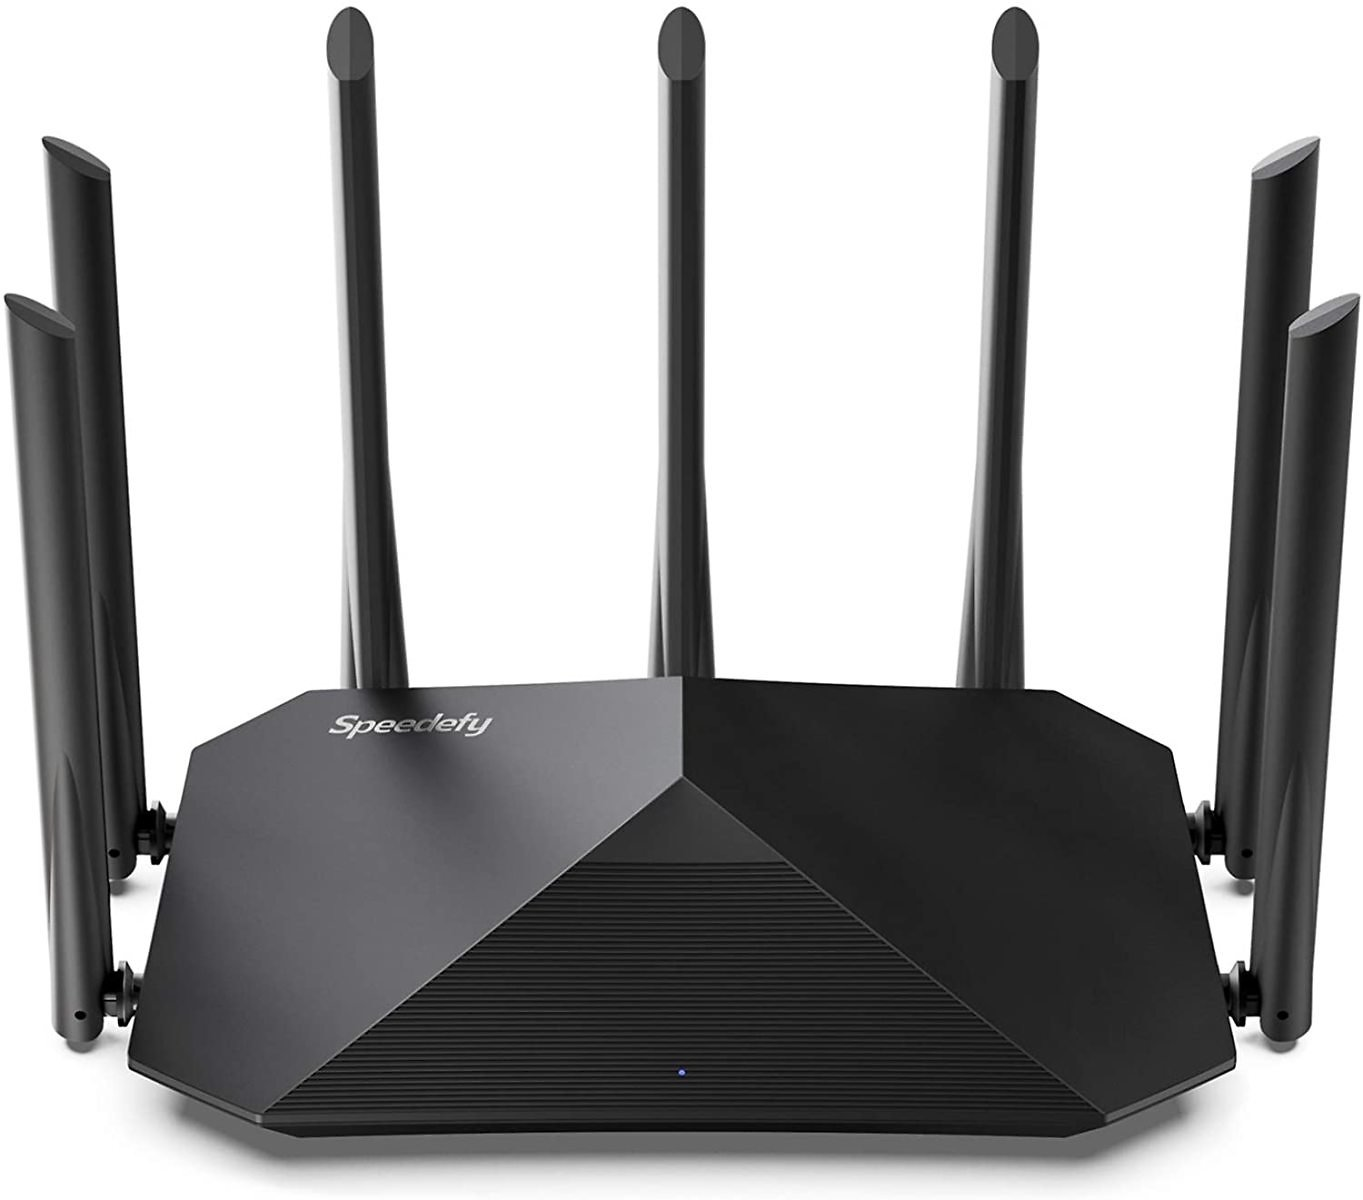 Speedefy AC2100 Smart WiFi Router (Model K7)